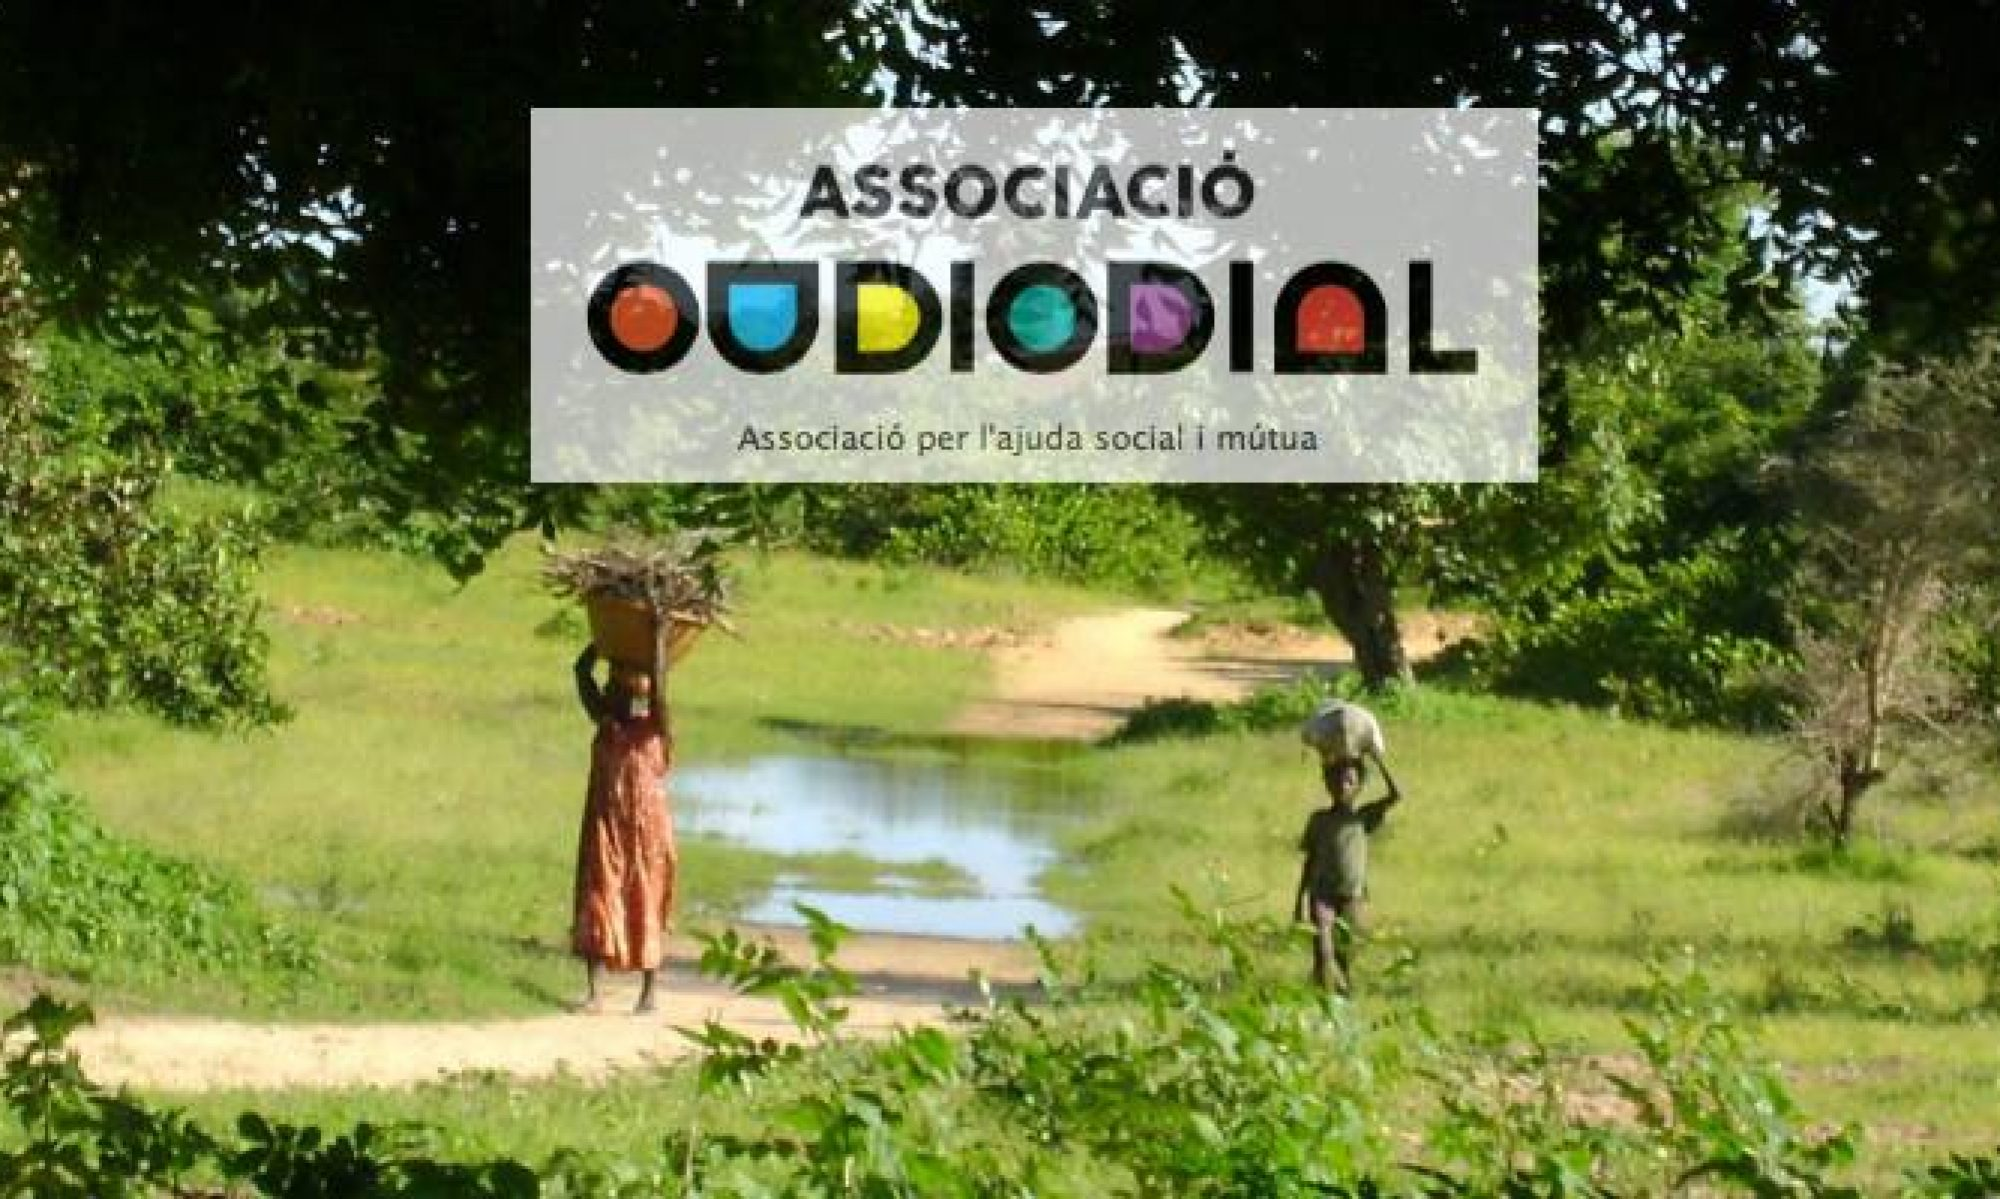 Oudiodial